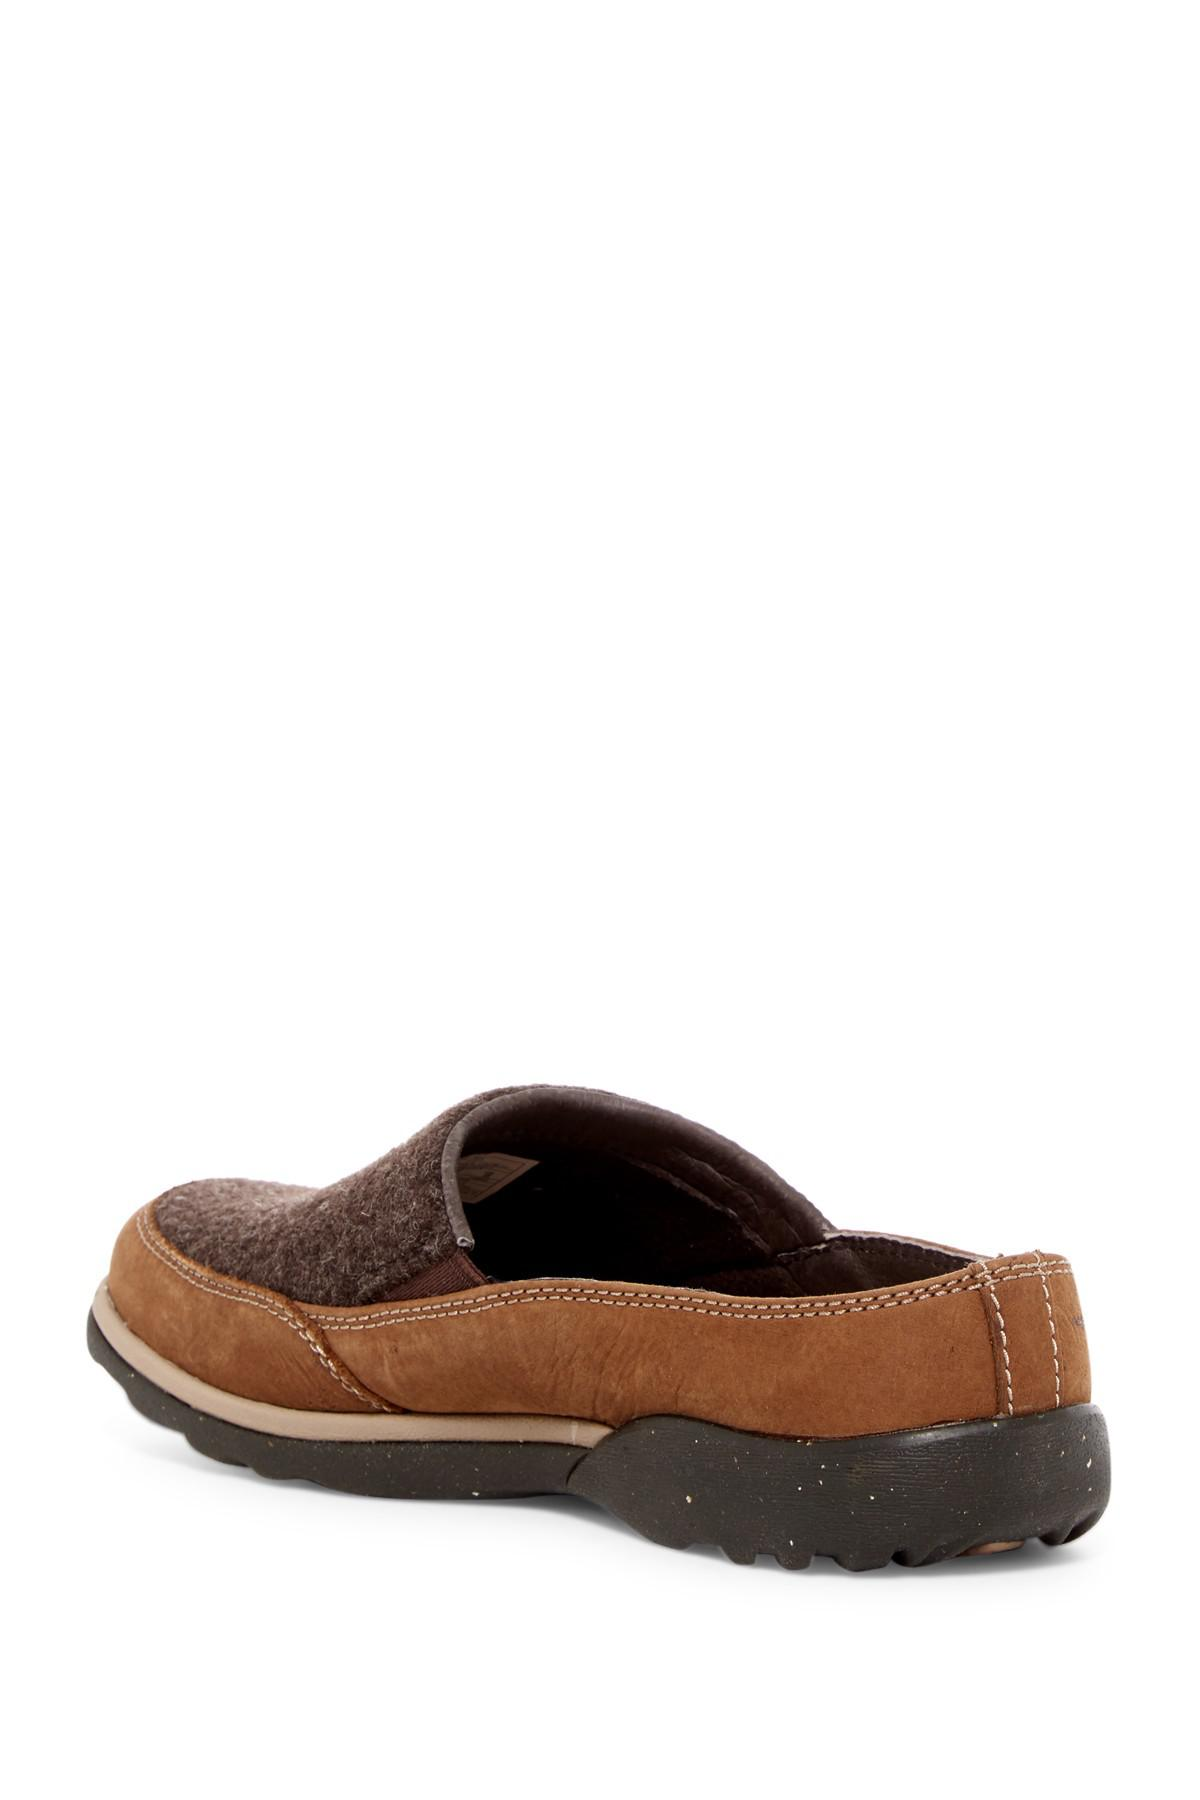 7ed64a905ca9 Lyst - Chaco Quinn Slip-on Shoe in Brown for Men